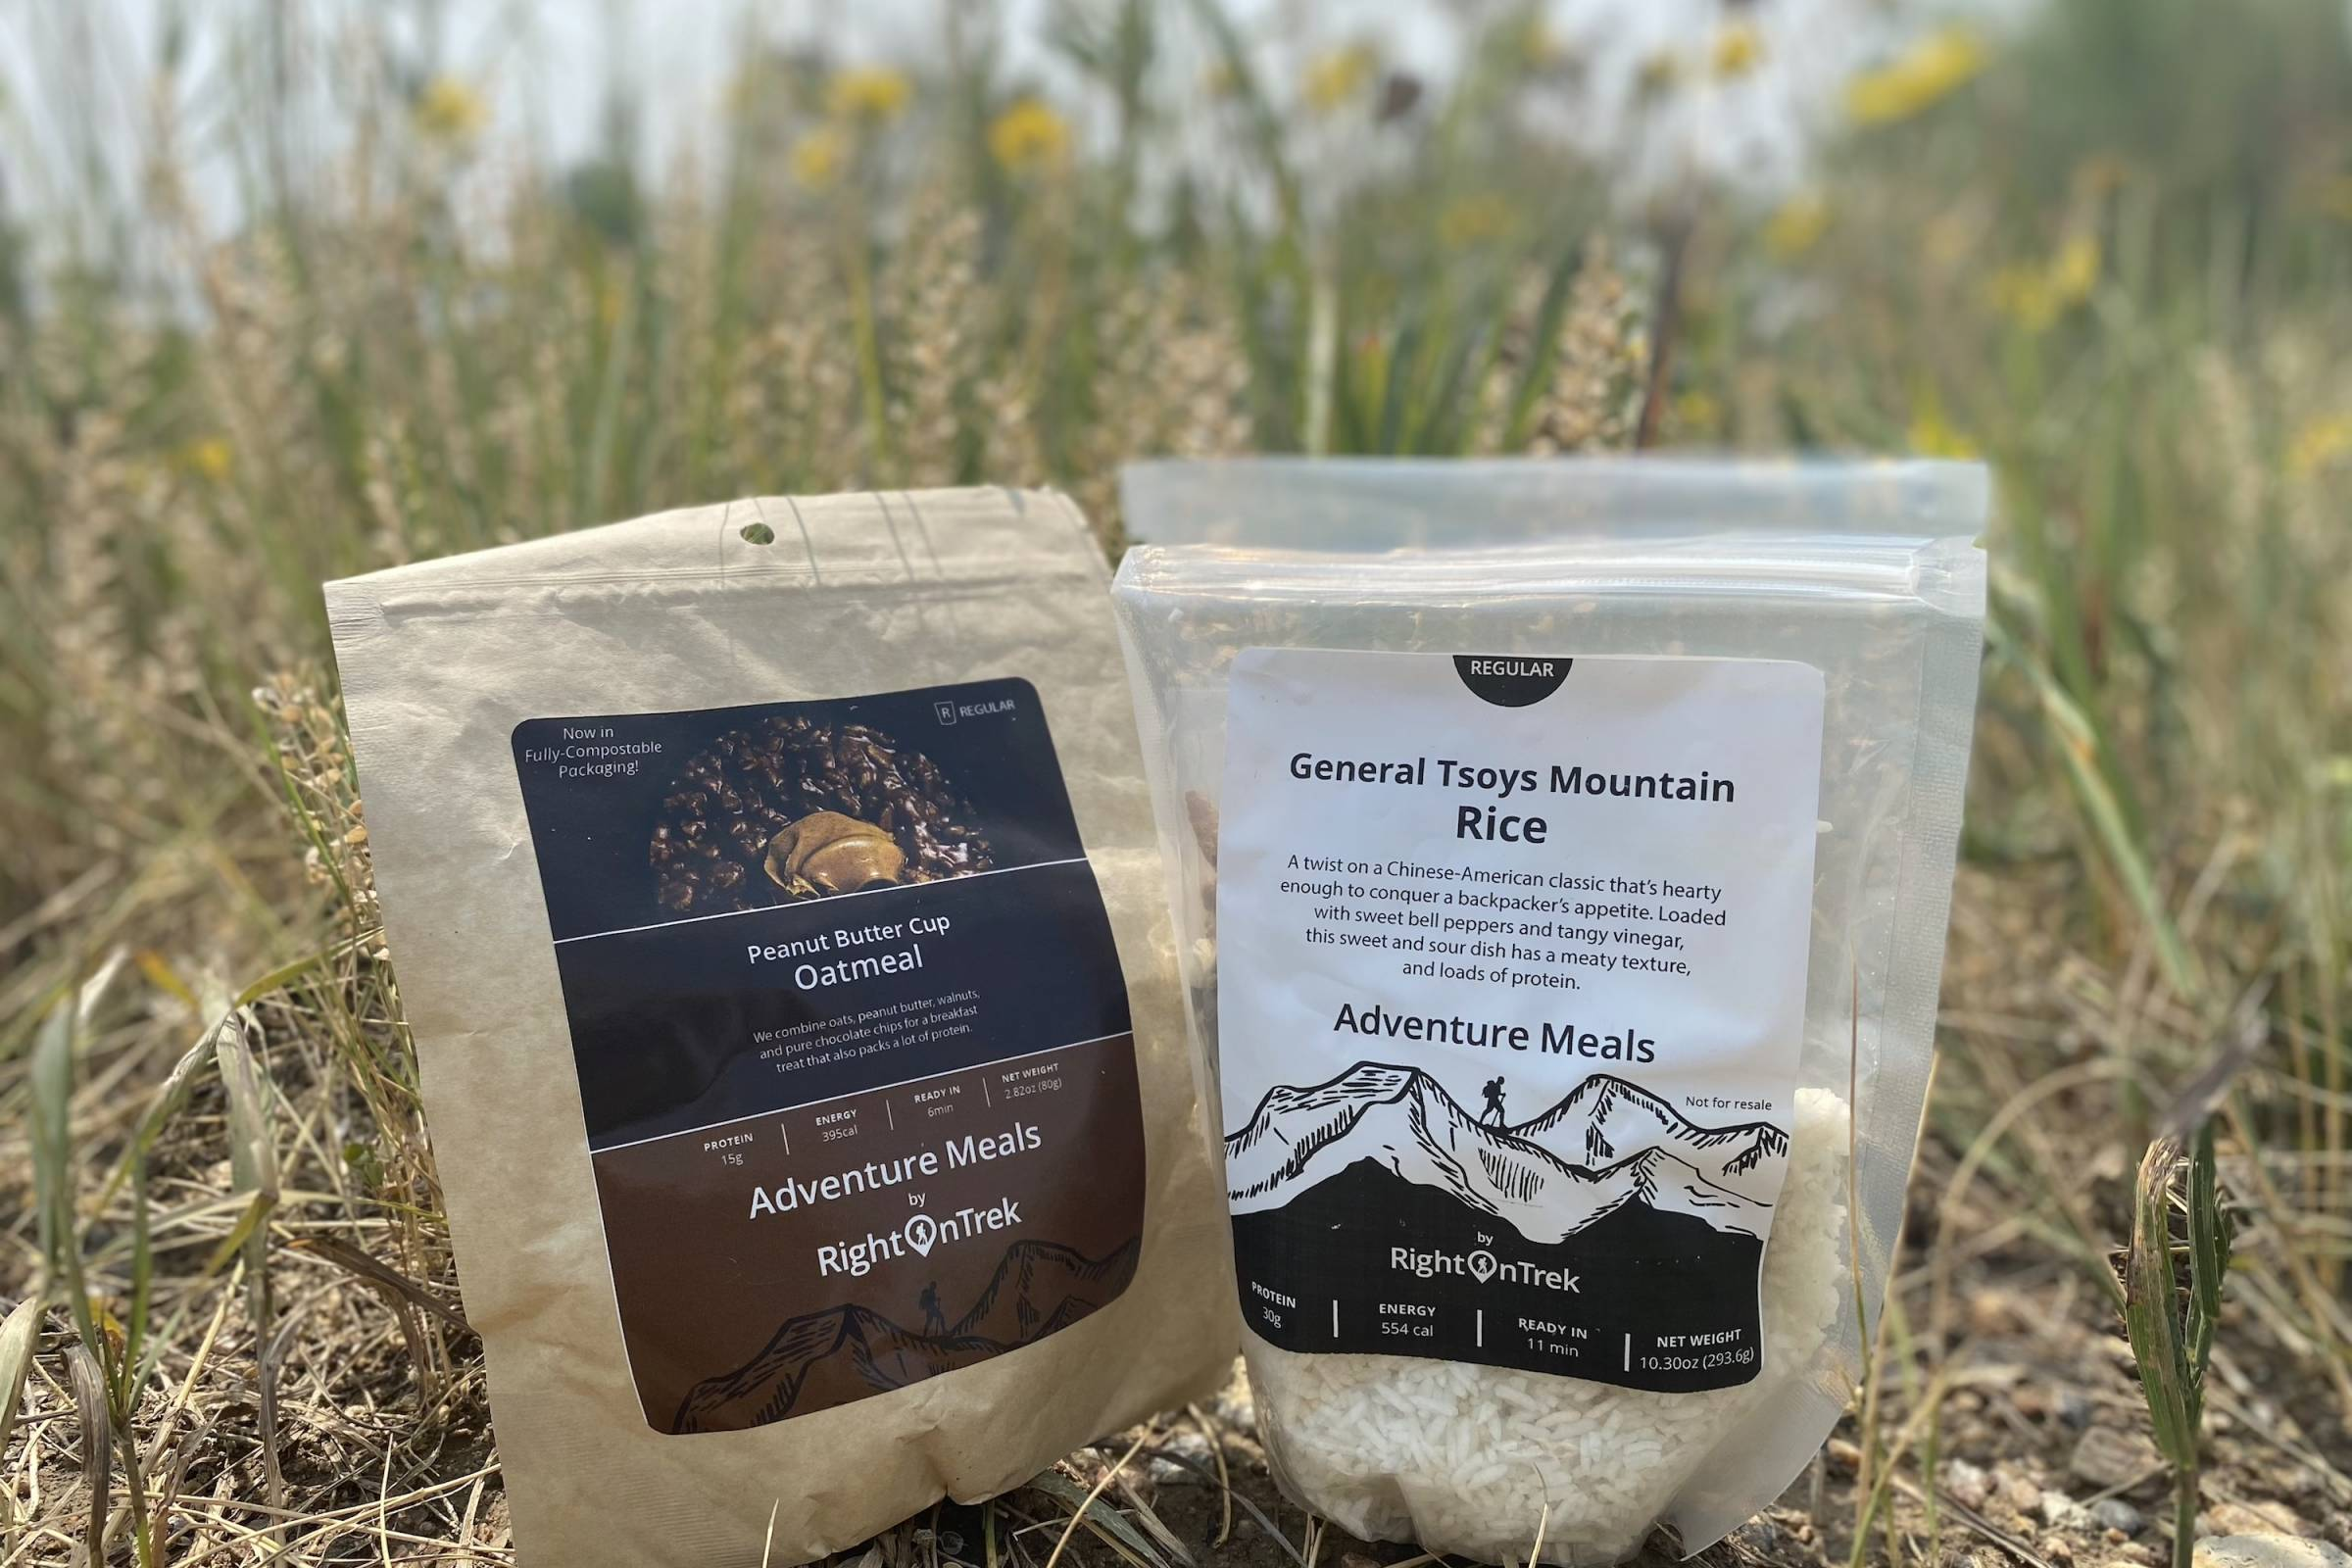 two RightOn Trek backpacking meals, an oatmeal breakfast and an rice entree in their packaging